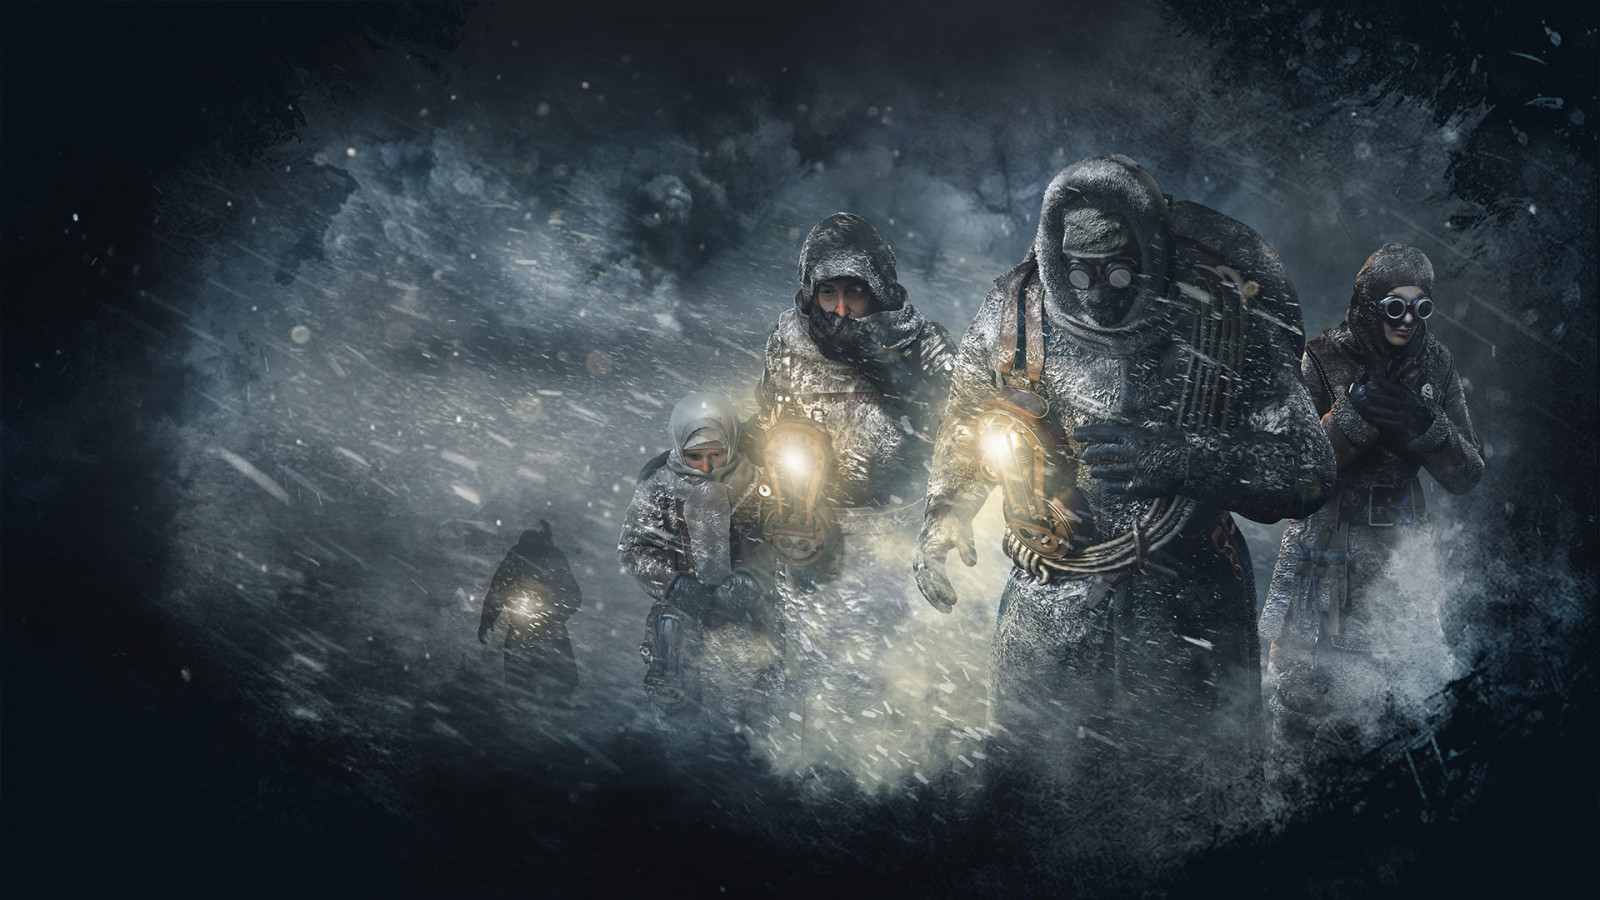 Wallpaper   Frostpunk  video games  Video Game Art  snow  games art     Frostpunk video games Video Game Art snow games art artwork